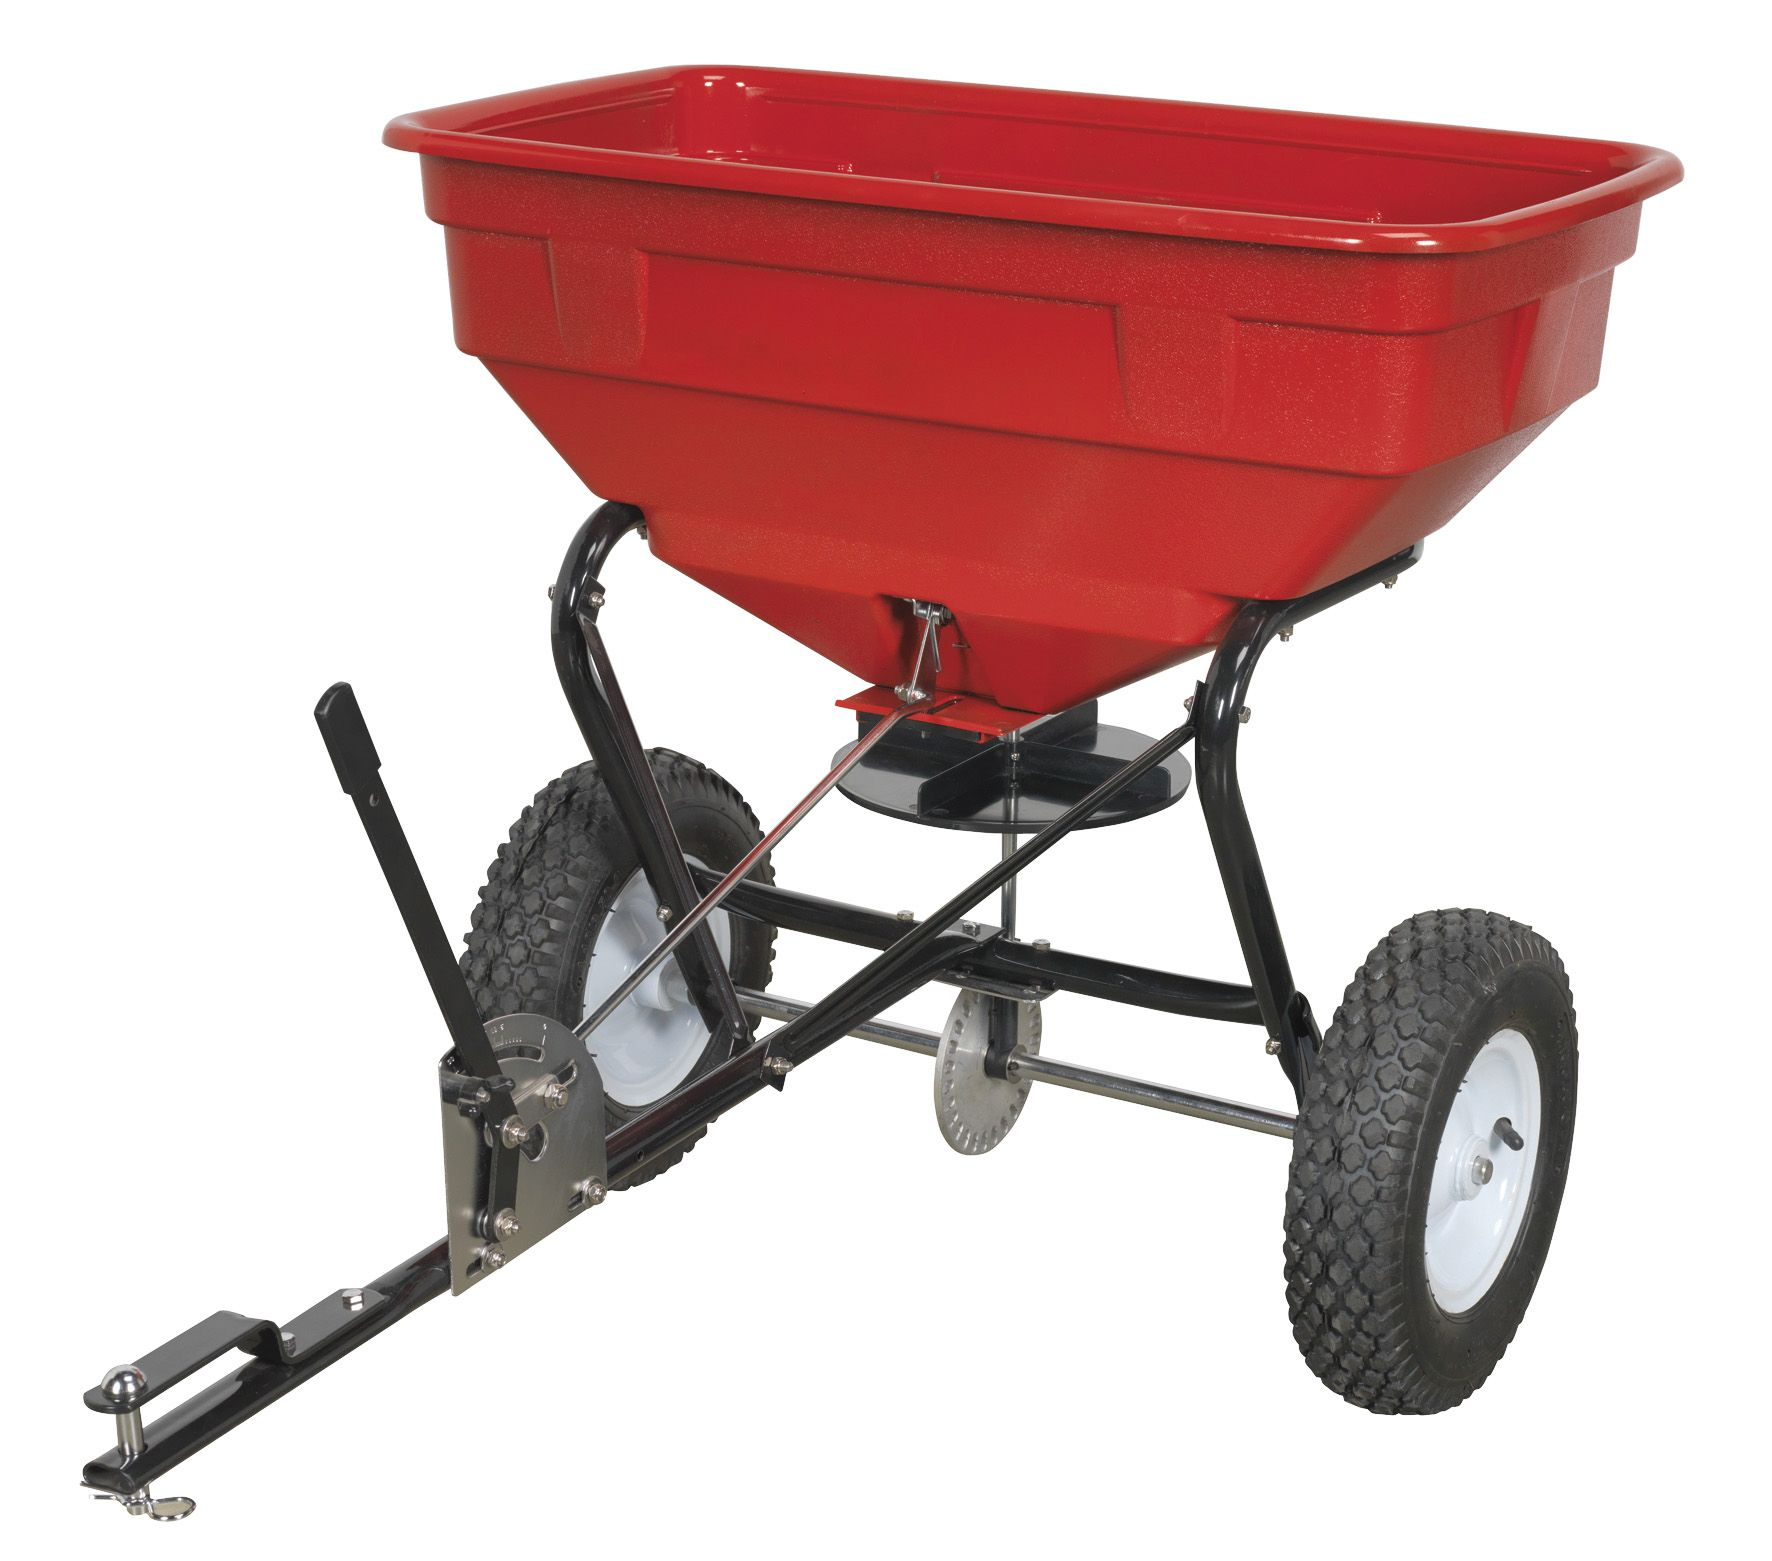 Sealey Broadcast Spreader 57kg Tow Behind